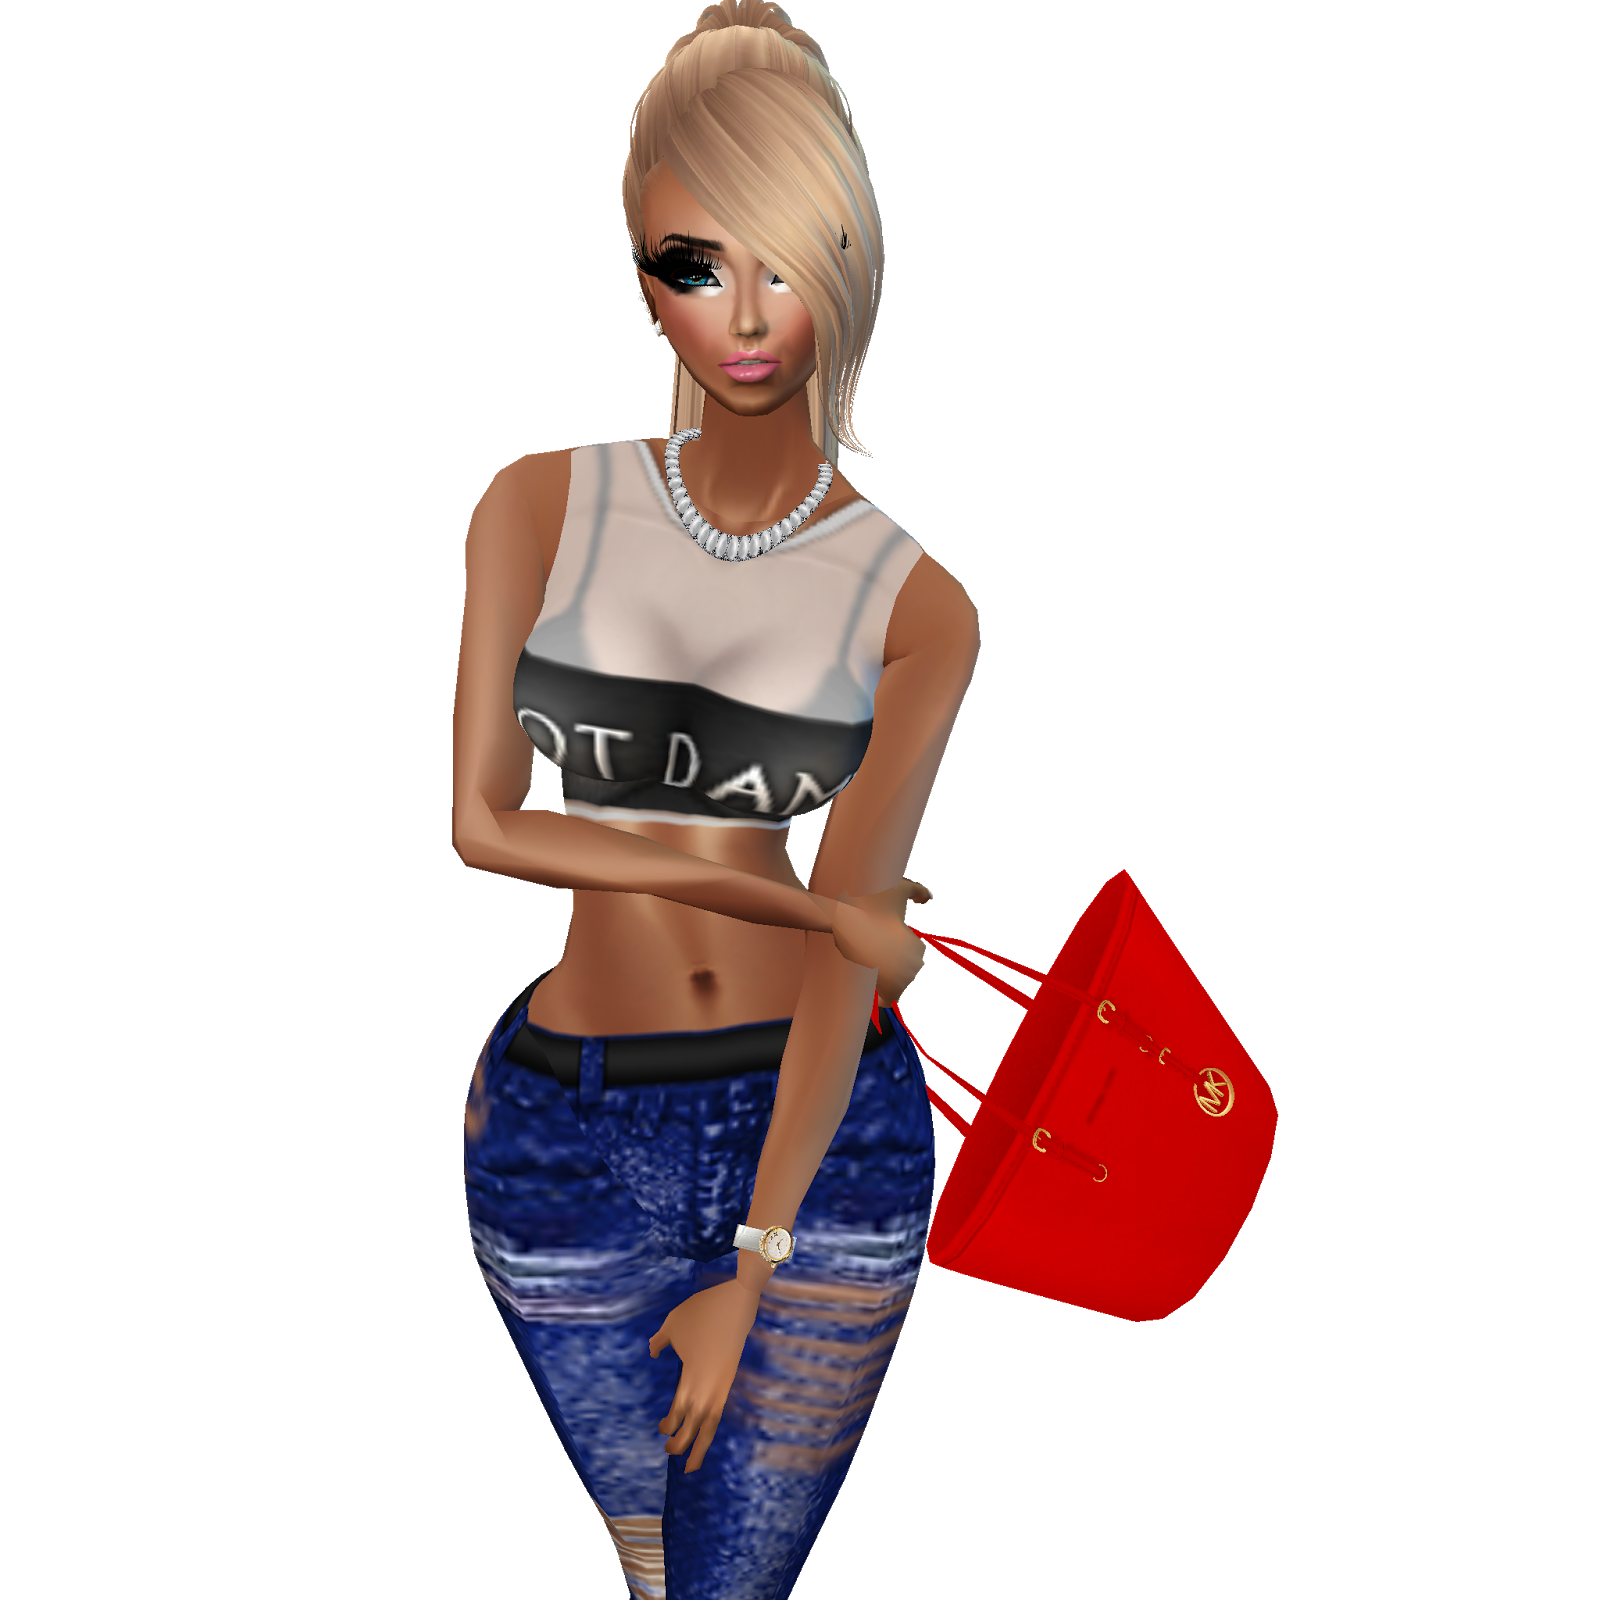 imvu fashion and style outfit of the week 9